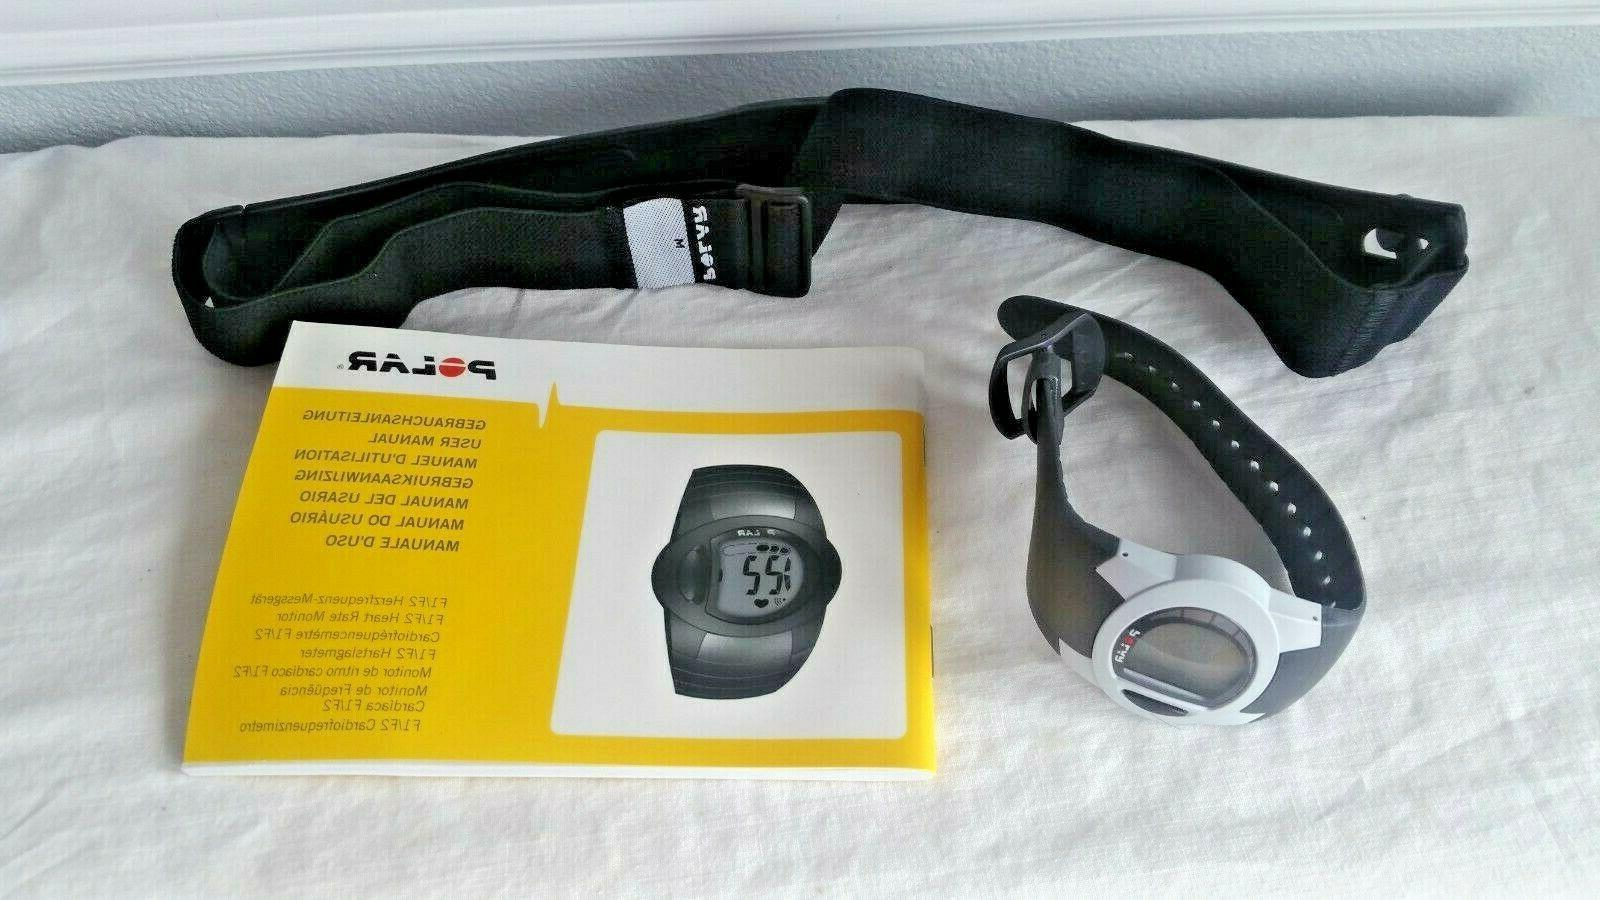 f1 heart rate monitor with instructions